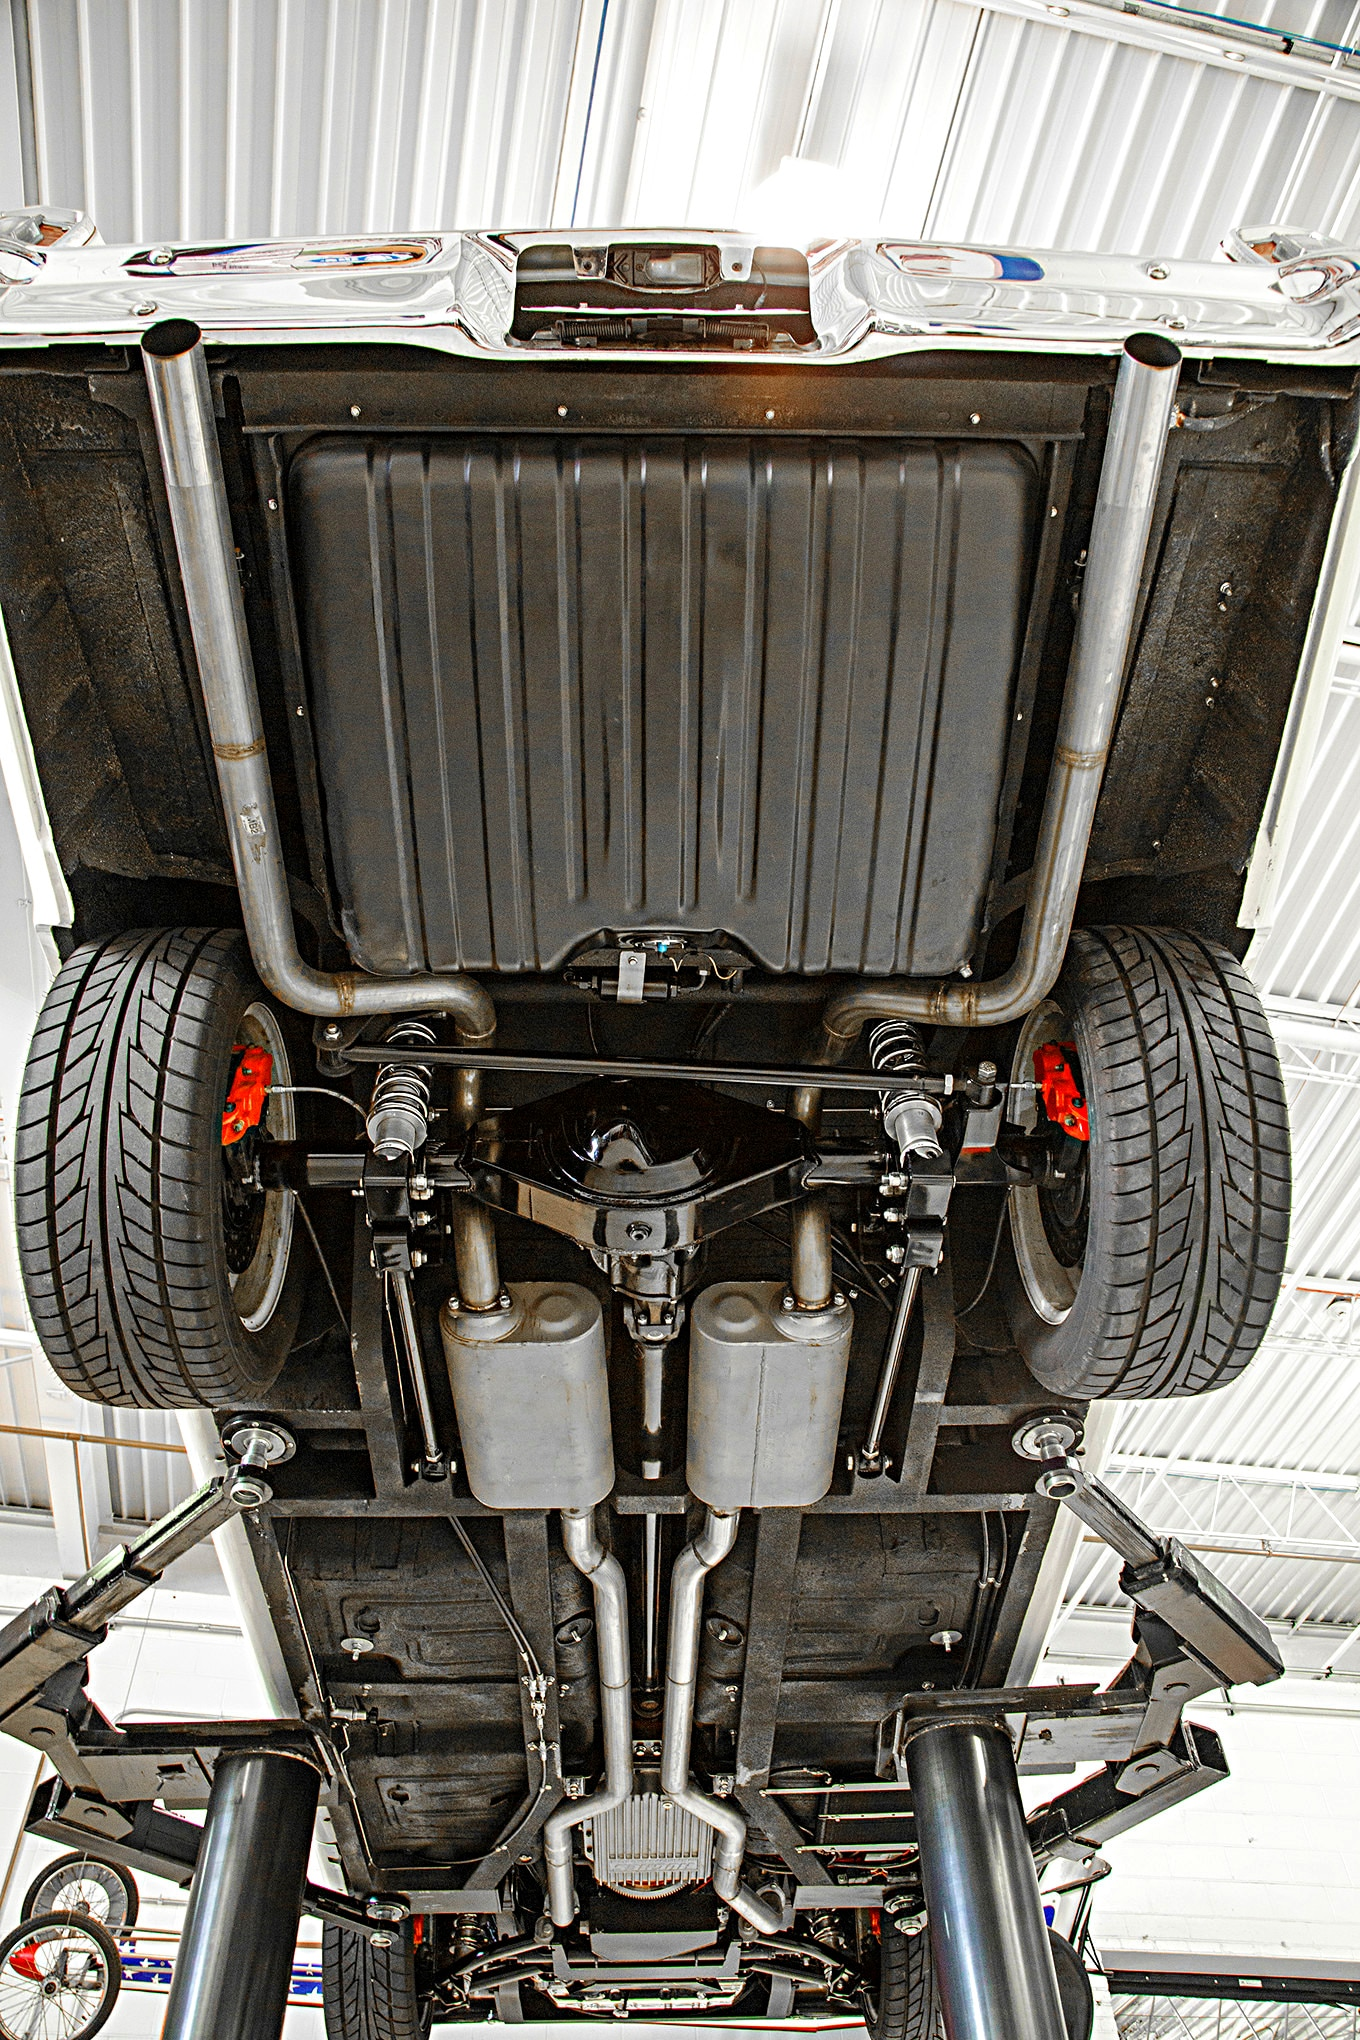 A Flowmaster kit was used to complete the exhaust system. Note how the pipes and mufflers tuck up inside the frame.